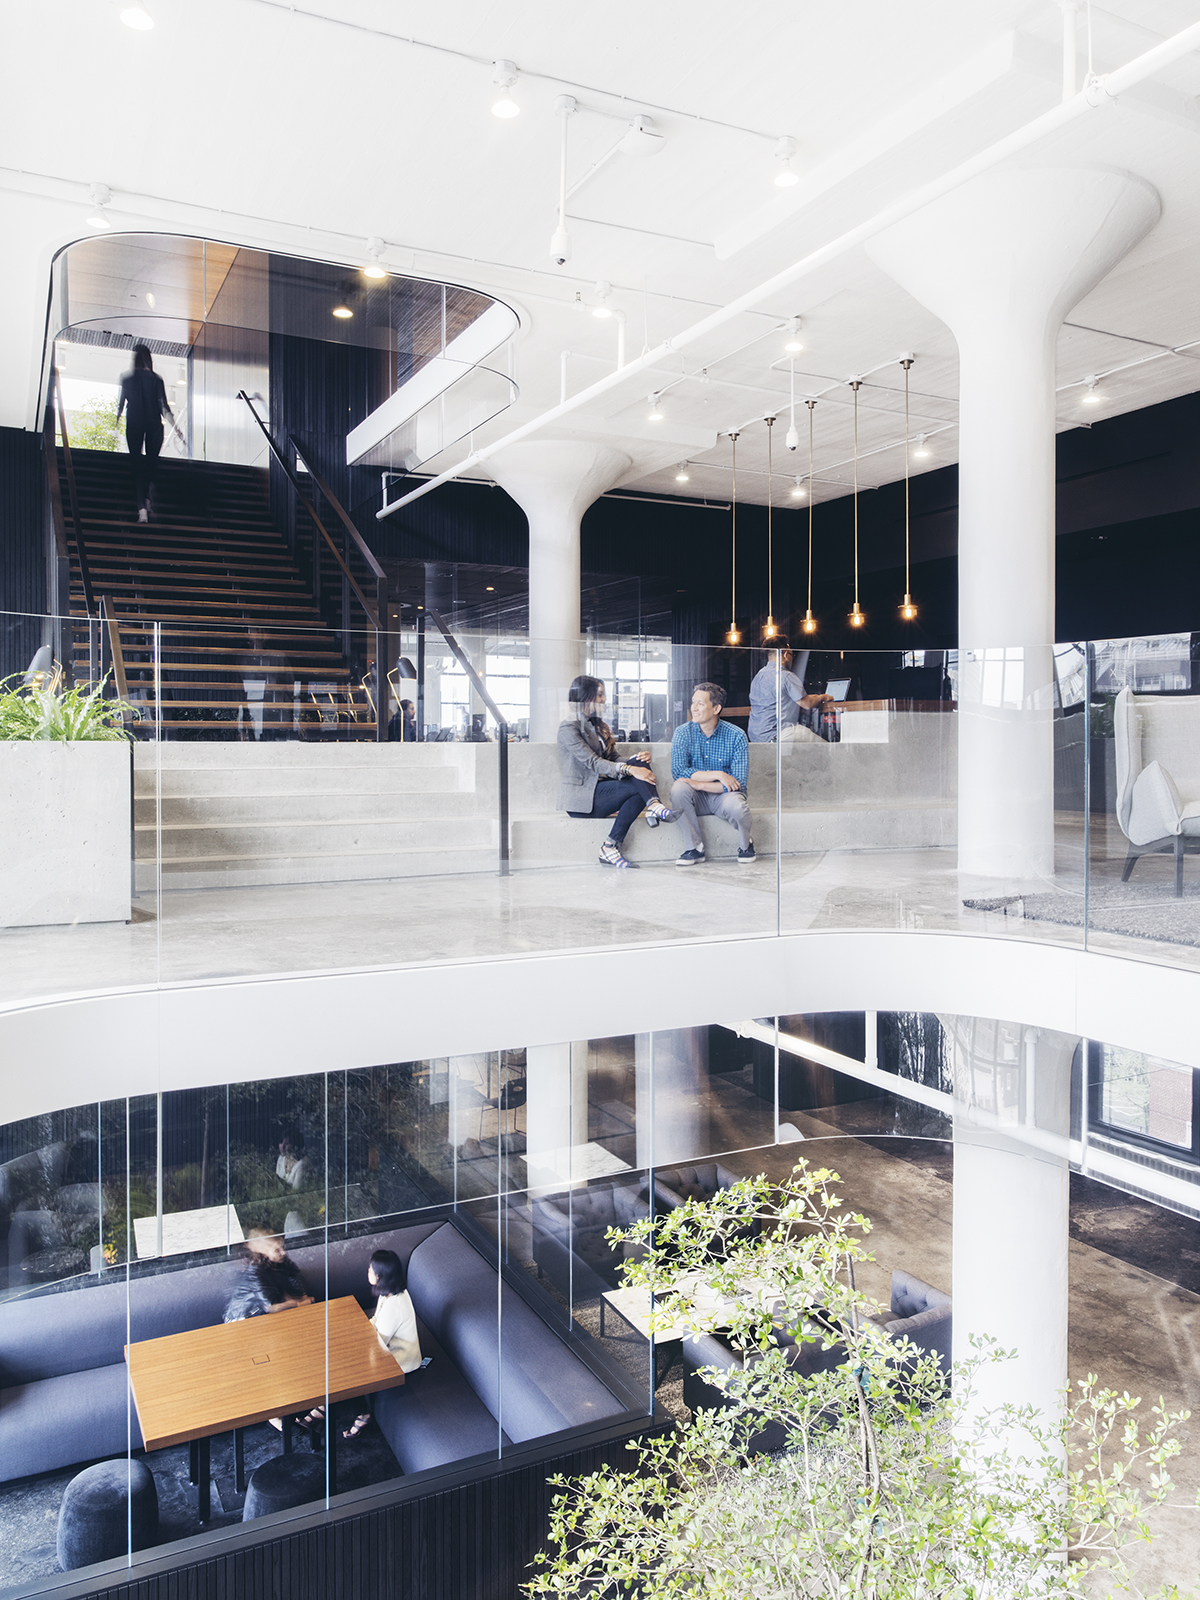 Inside Squarespace's New Super Cool NYC Headquarters